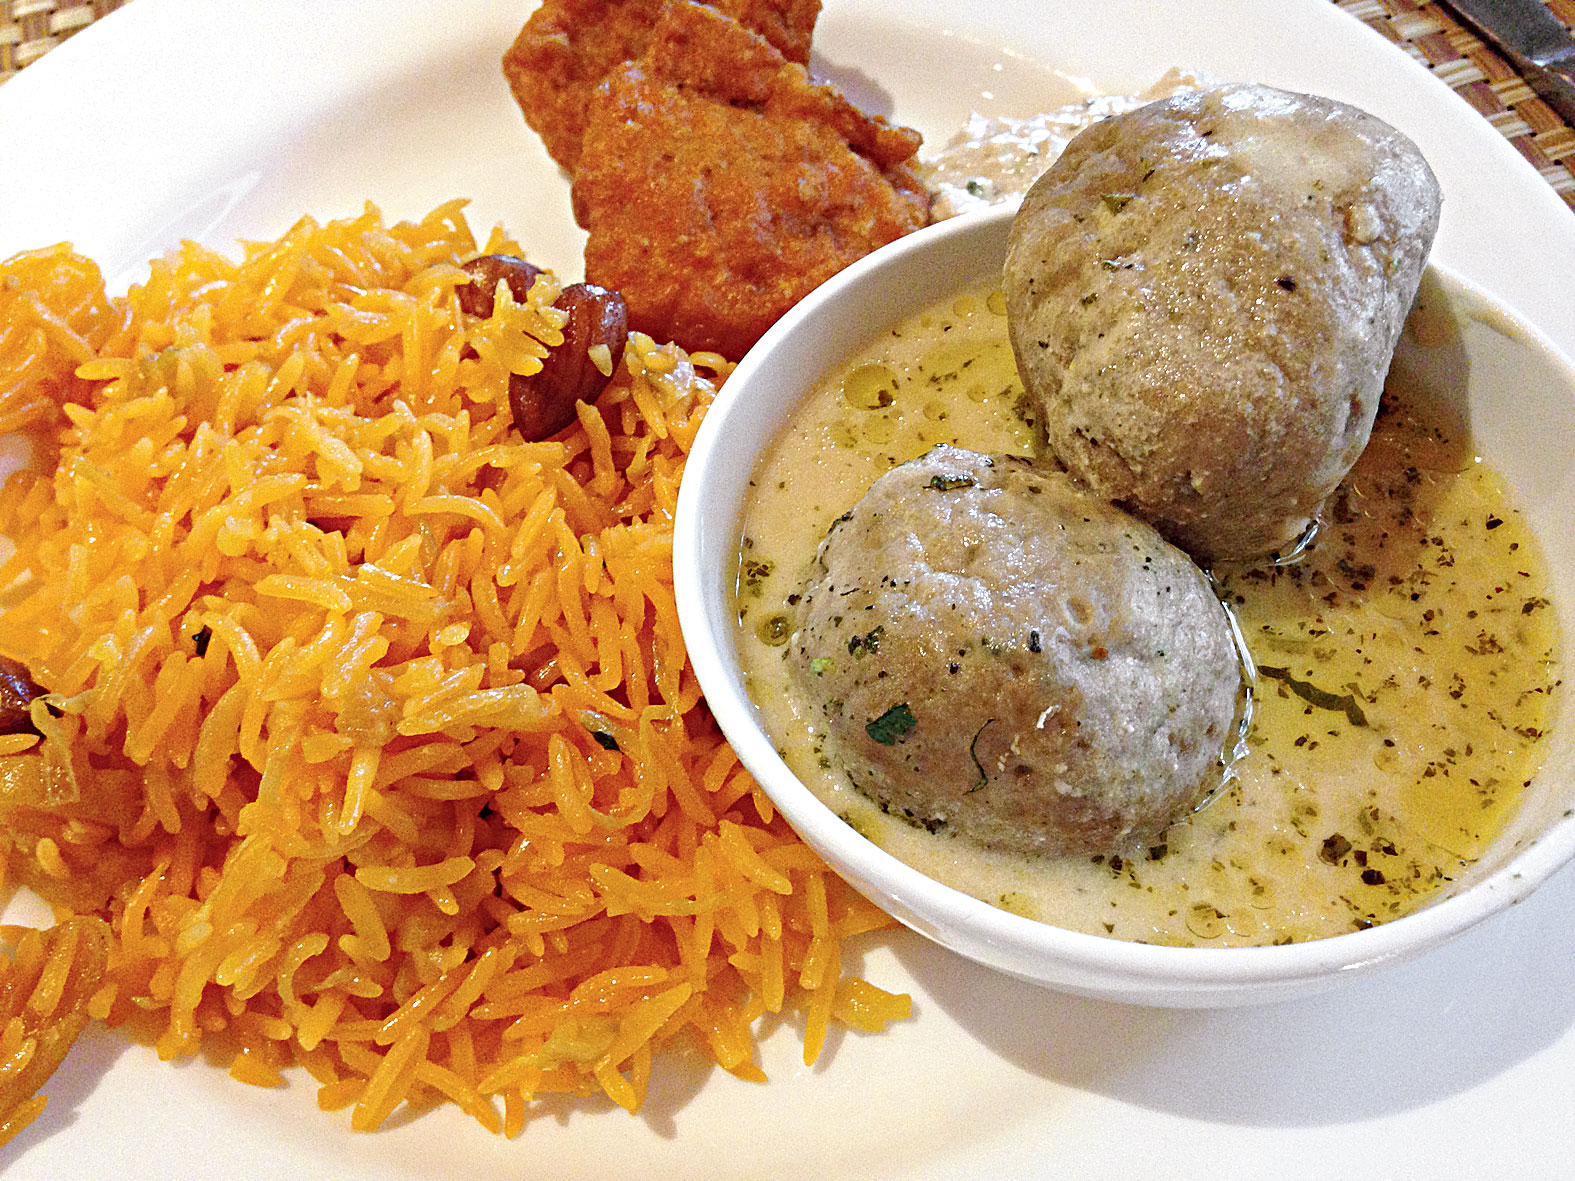 Kashmiri food is rich and delicious. The Gushtaba and Rhubani Pulao made for a yum lunch